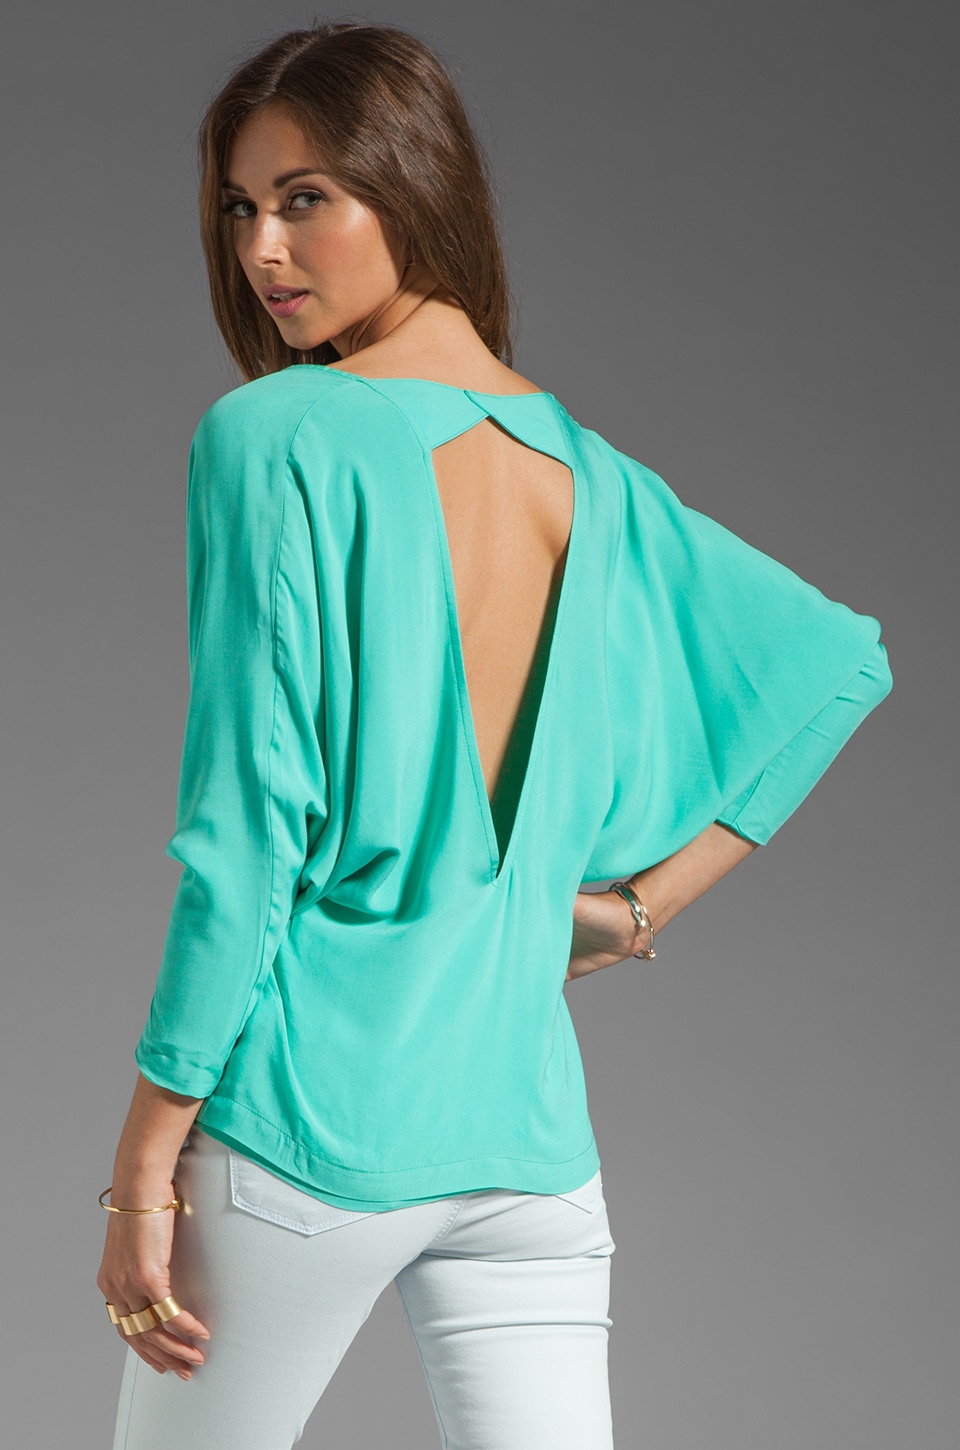 Boulee Skylar Blouse in Mint